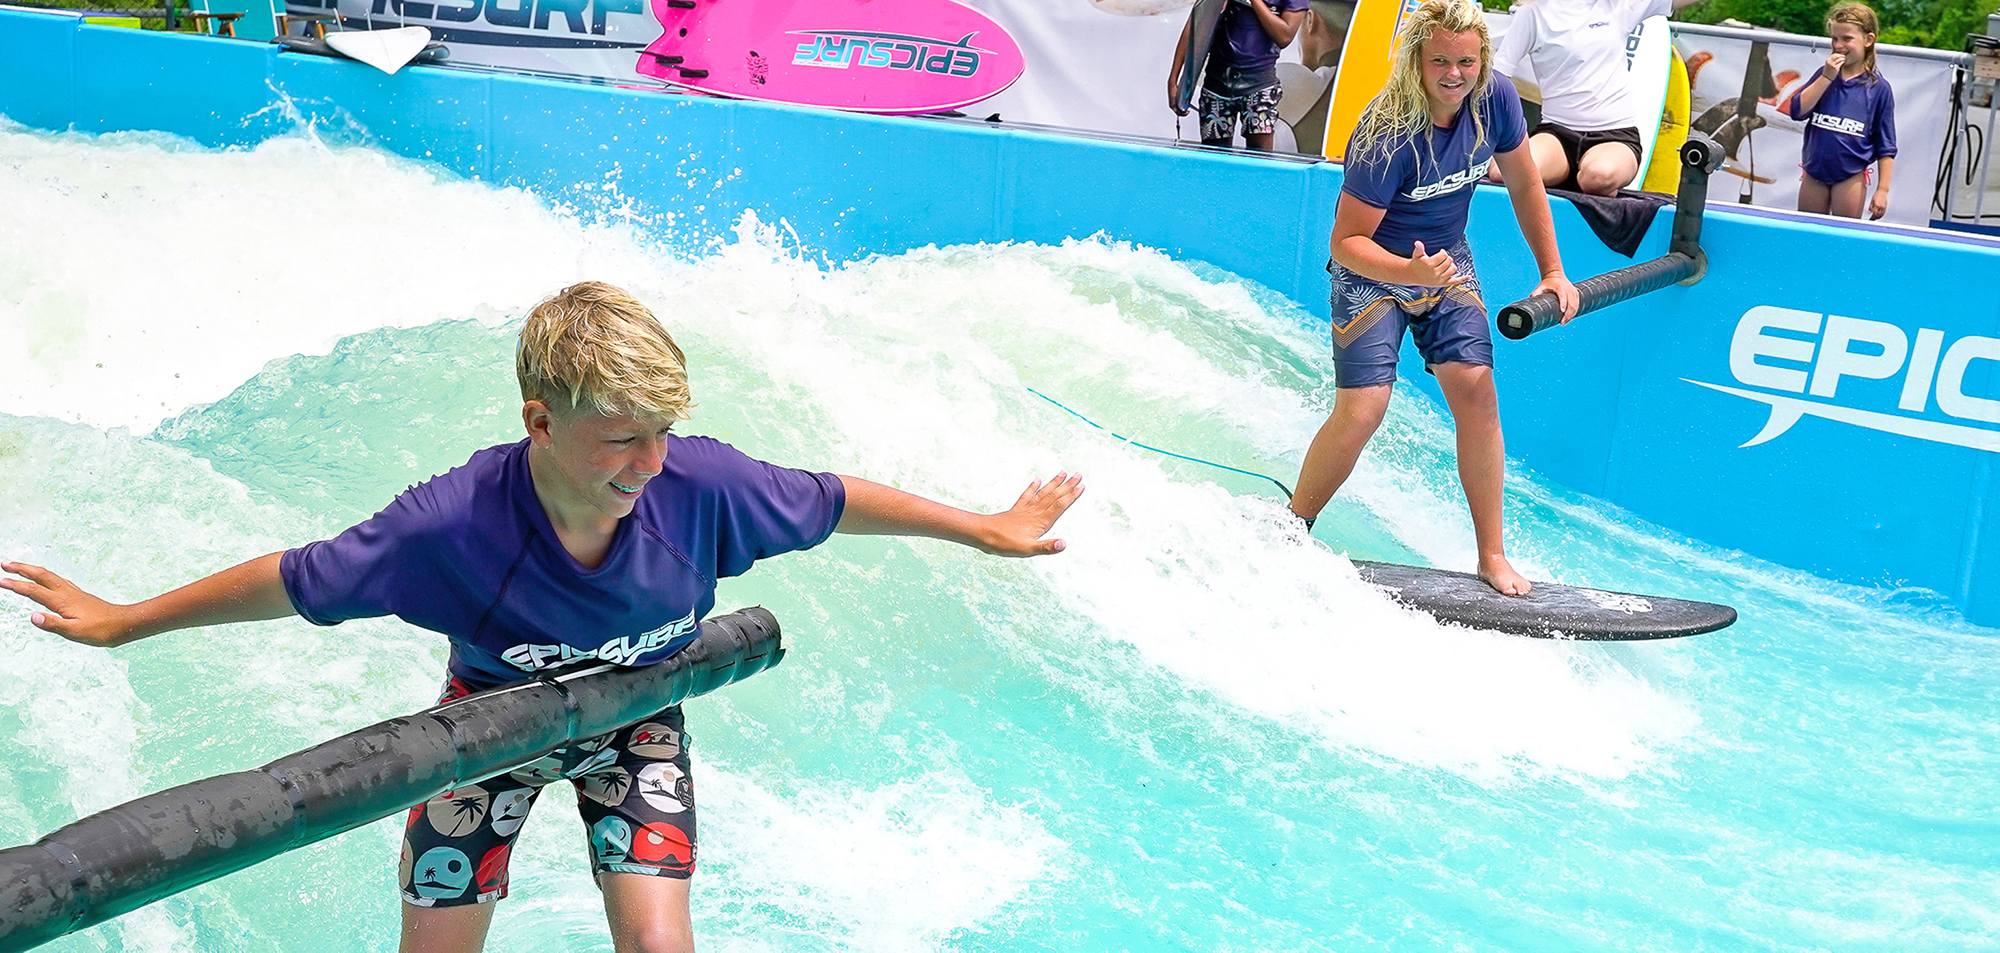 two boys learning to surf on epicsurf training bars stationary wave